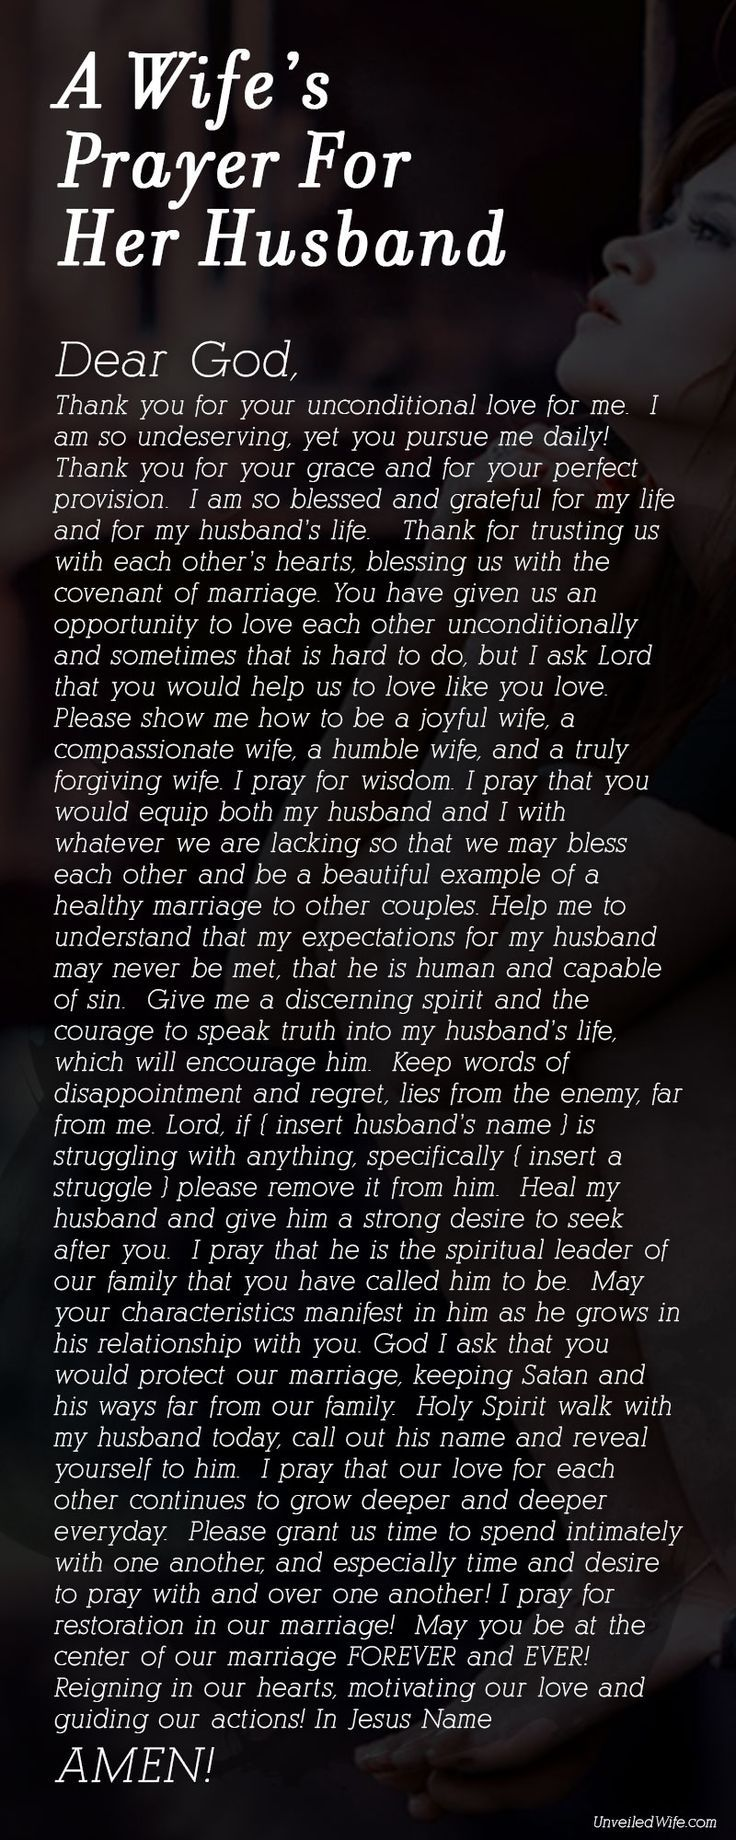 BEAUTIFUL Prayer from a wife for her husband to our Lord.  WOW!!!